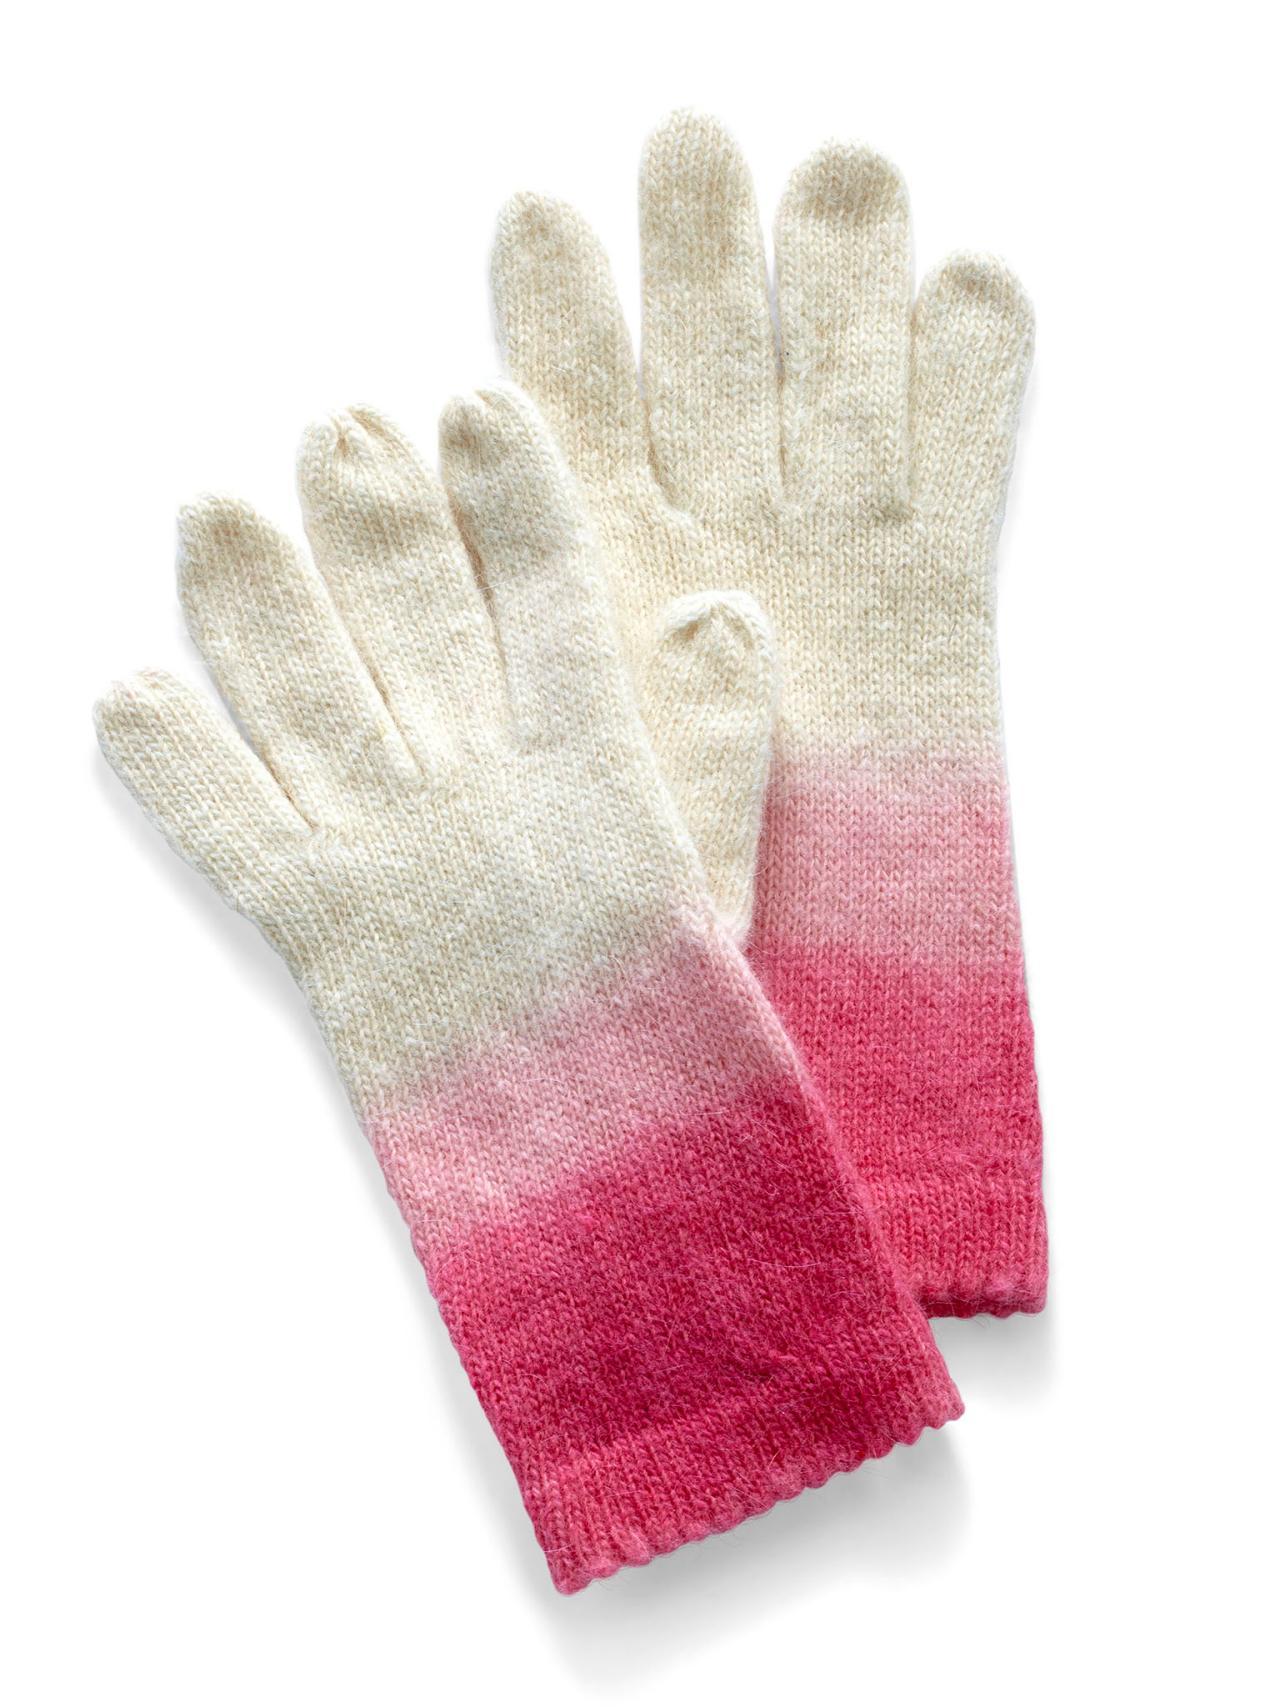 Diy dip dye gloves